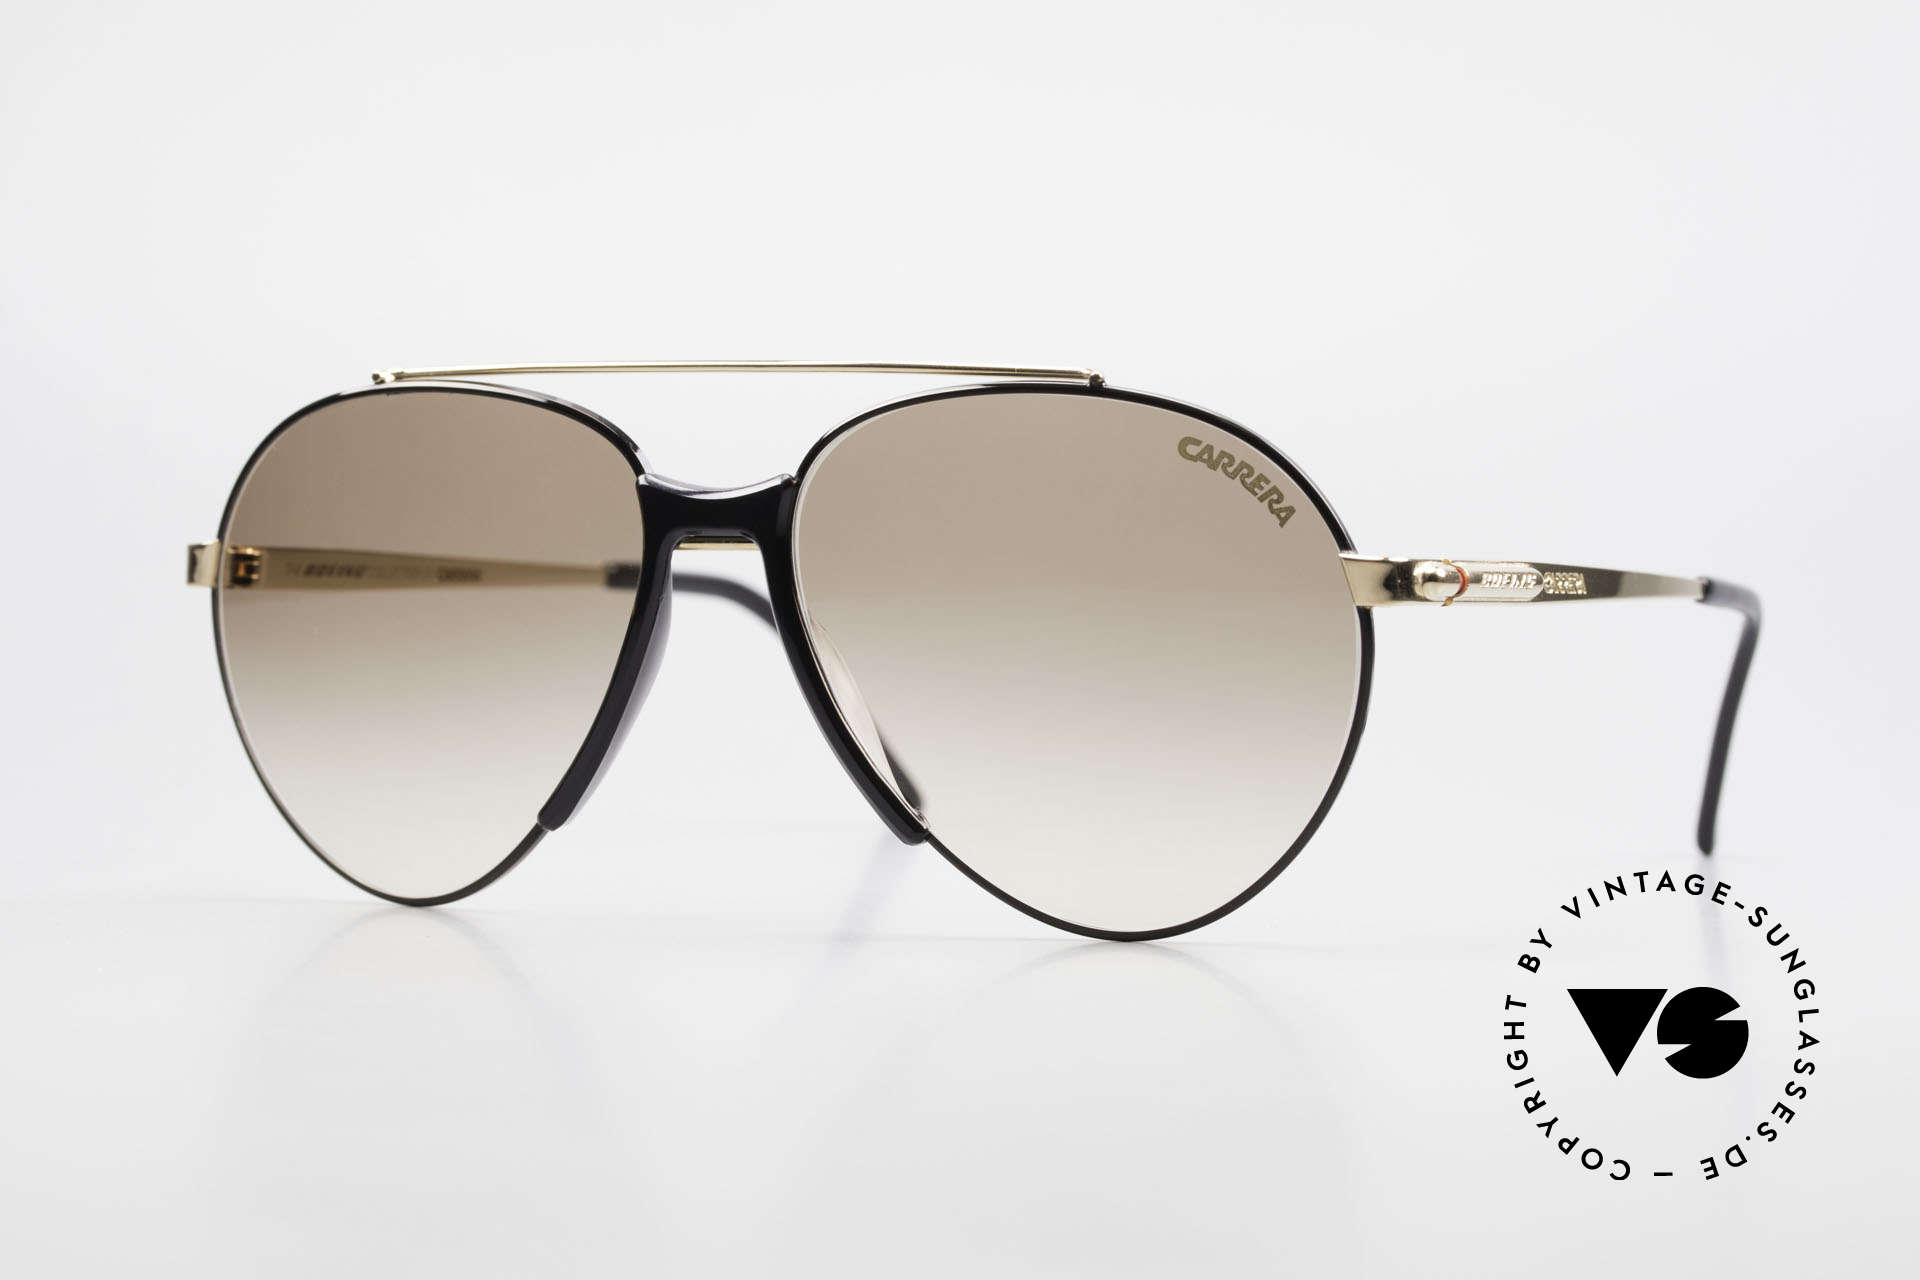 Boeing 5734 Old Glasses 80s Aviator Shades, craftsmanship & design made to Boeing's specifications, Made for Men and Women